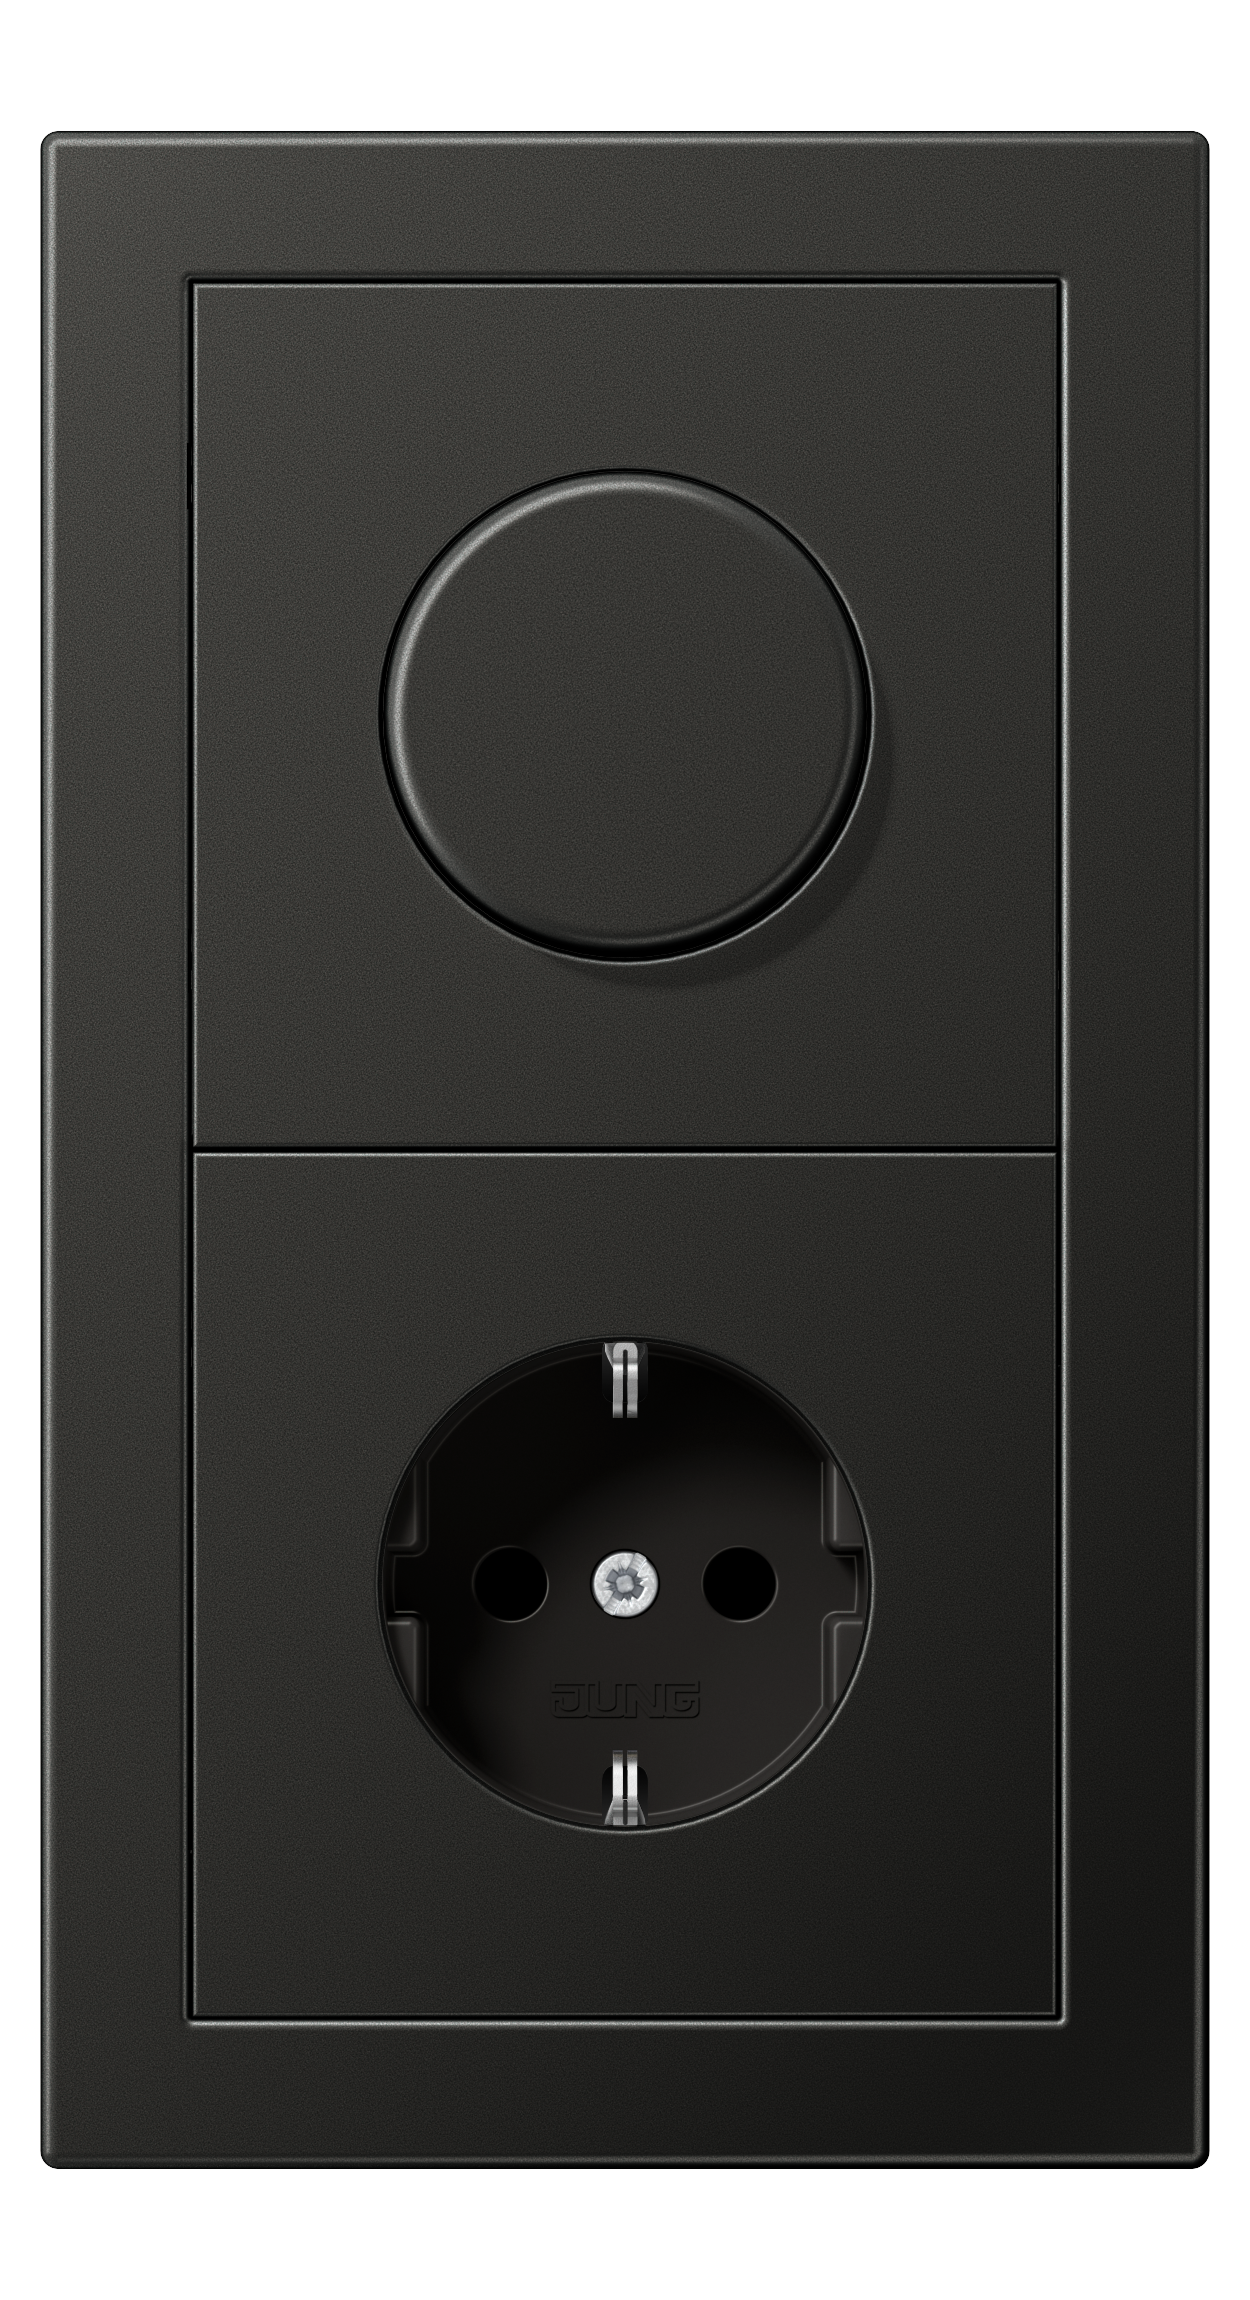 JUNG_LS_Design_anthracite_dimmer-socket